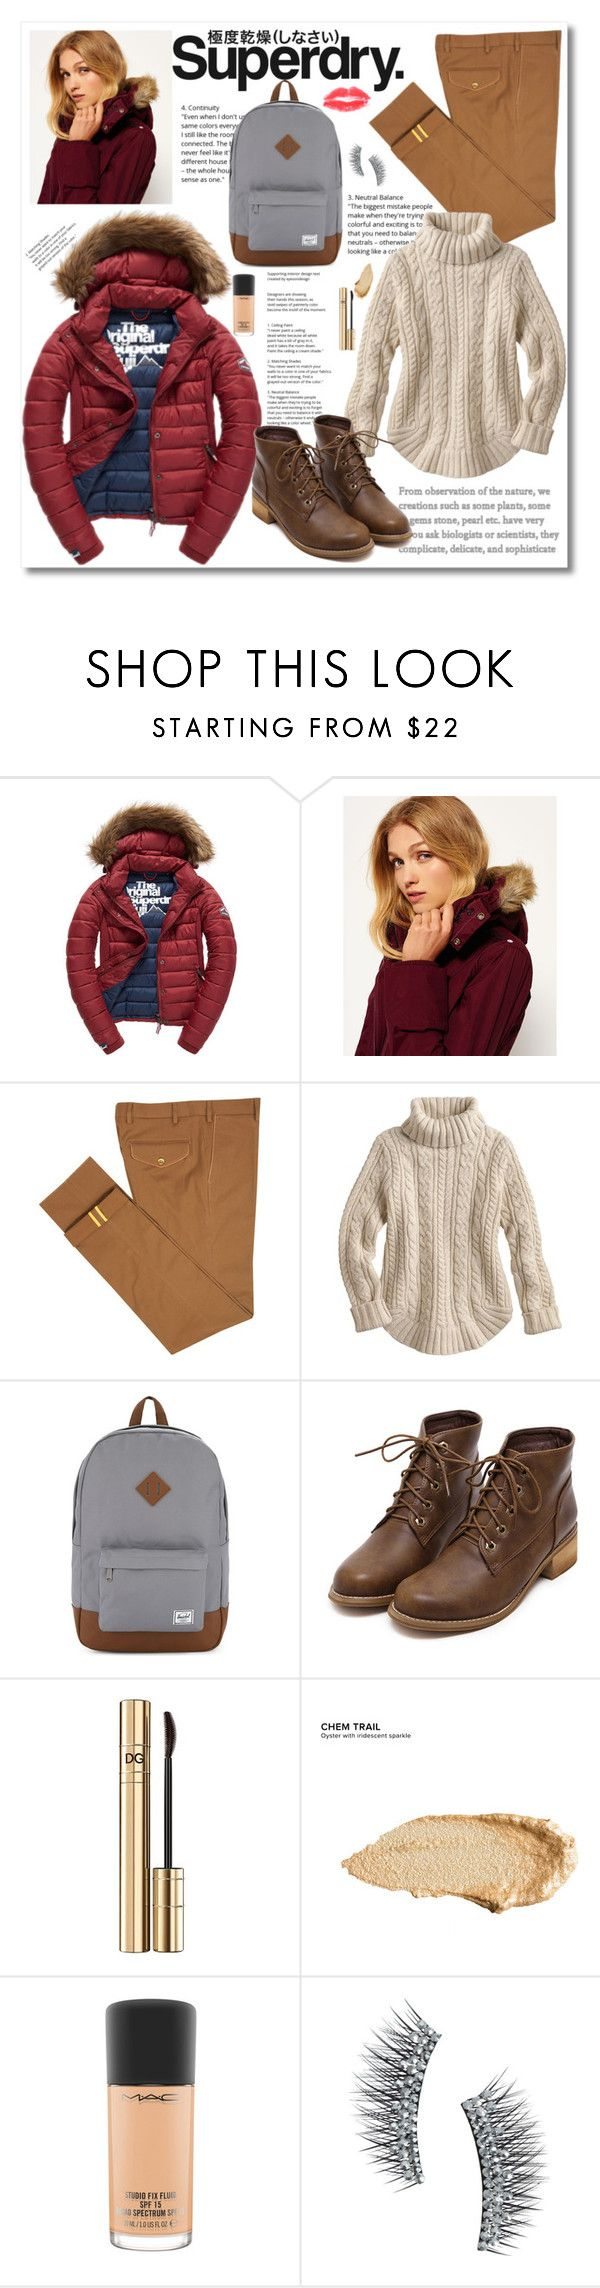 """The Cover Up – Jackets by Superdry: Contest Entry"" by cindy88 ❤ liked on Polyvore featuring Superdry, Fuji, Diverso, Herschel Supply Co., Dolce&Gabbana, Urban Decay, MAC Cosmetics and Kre-at Beauty"